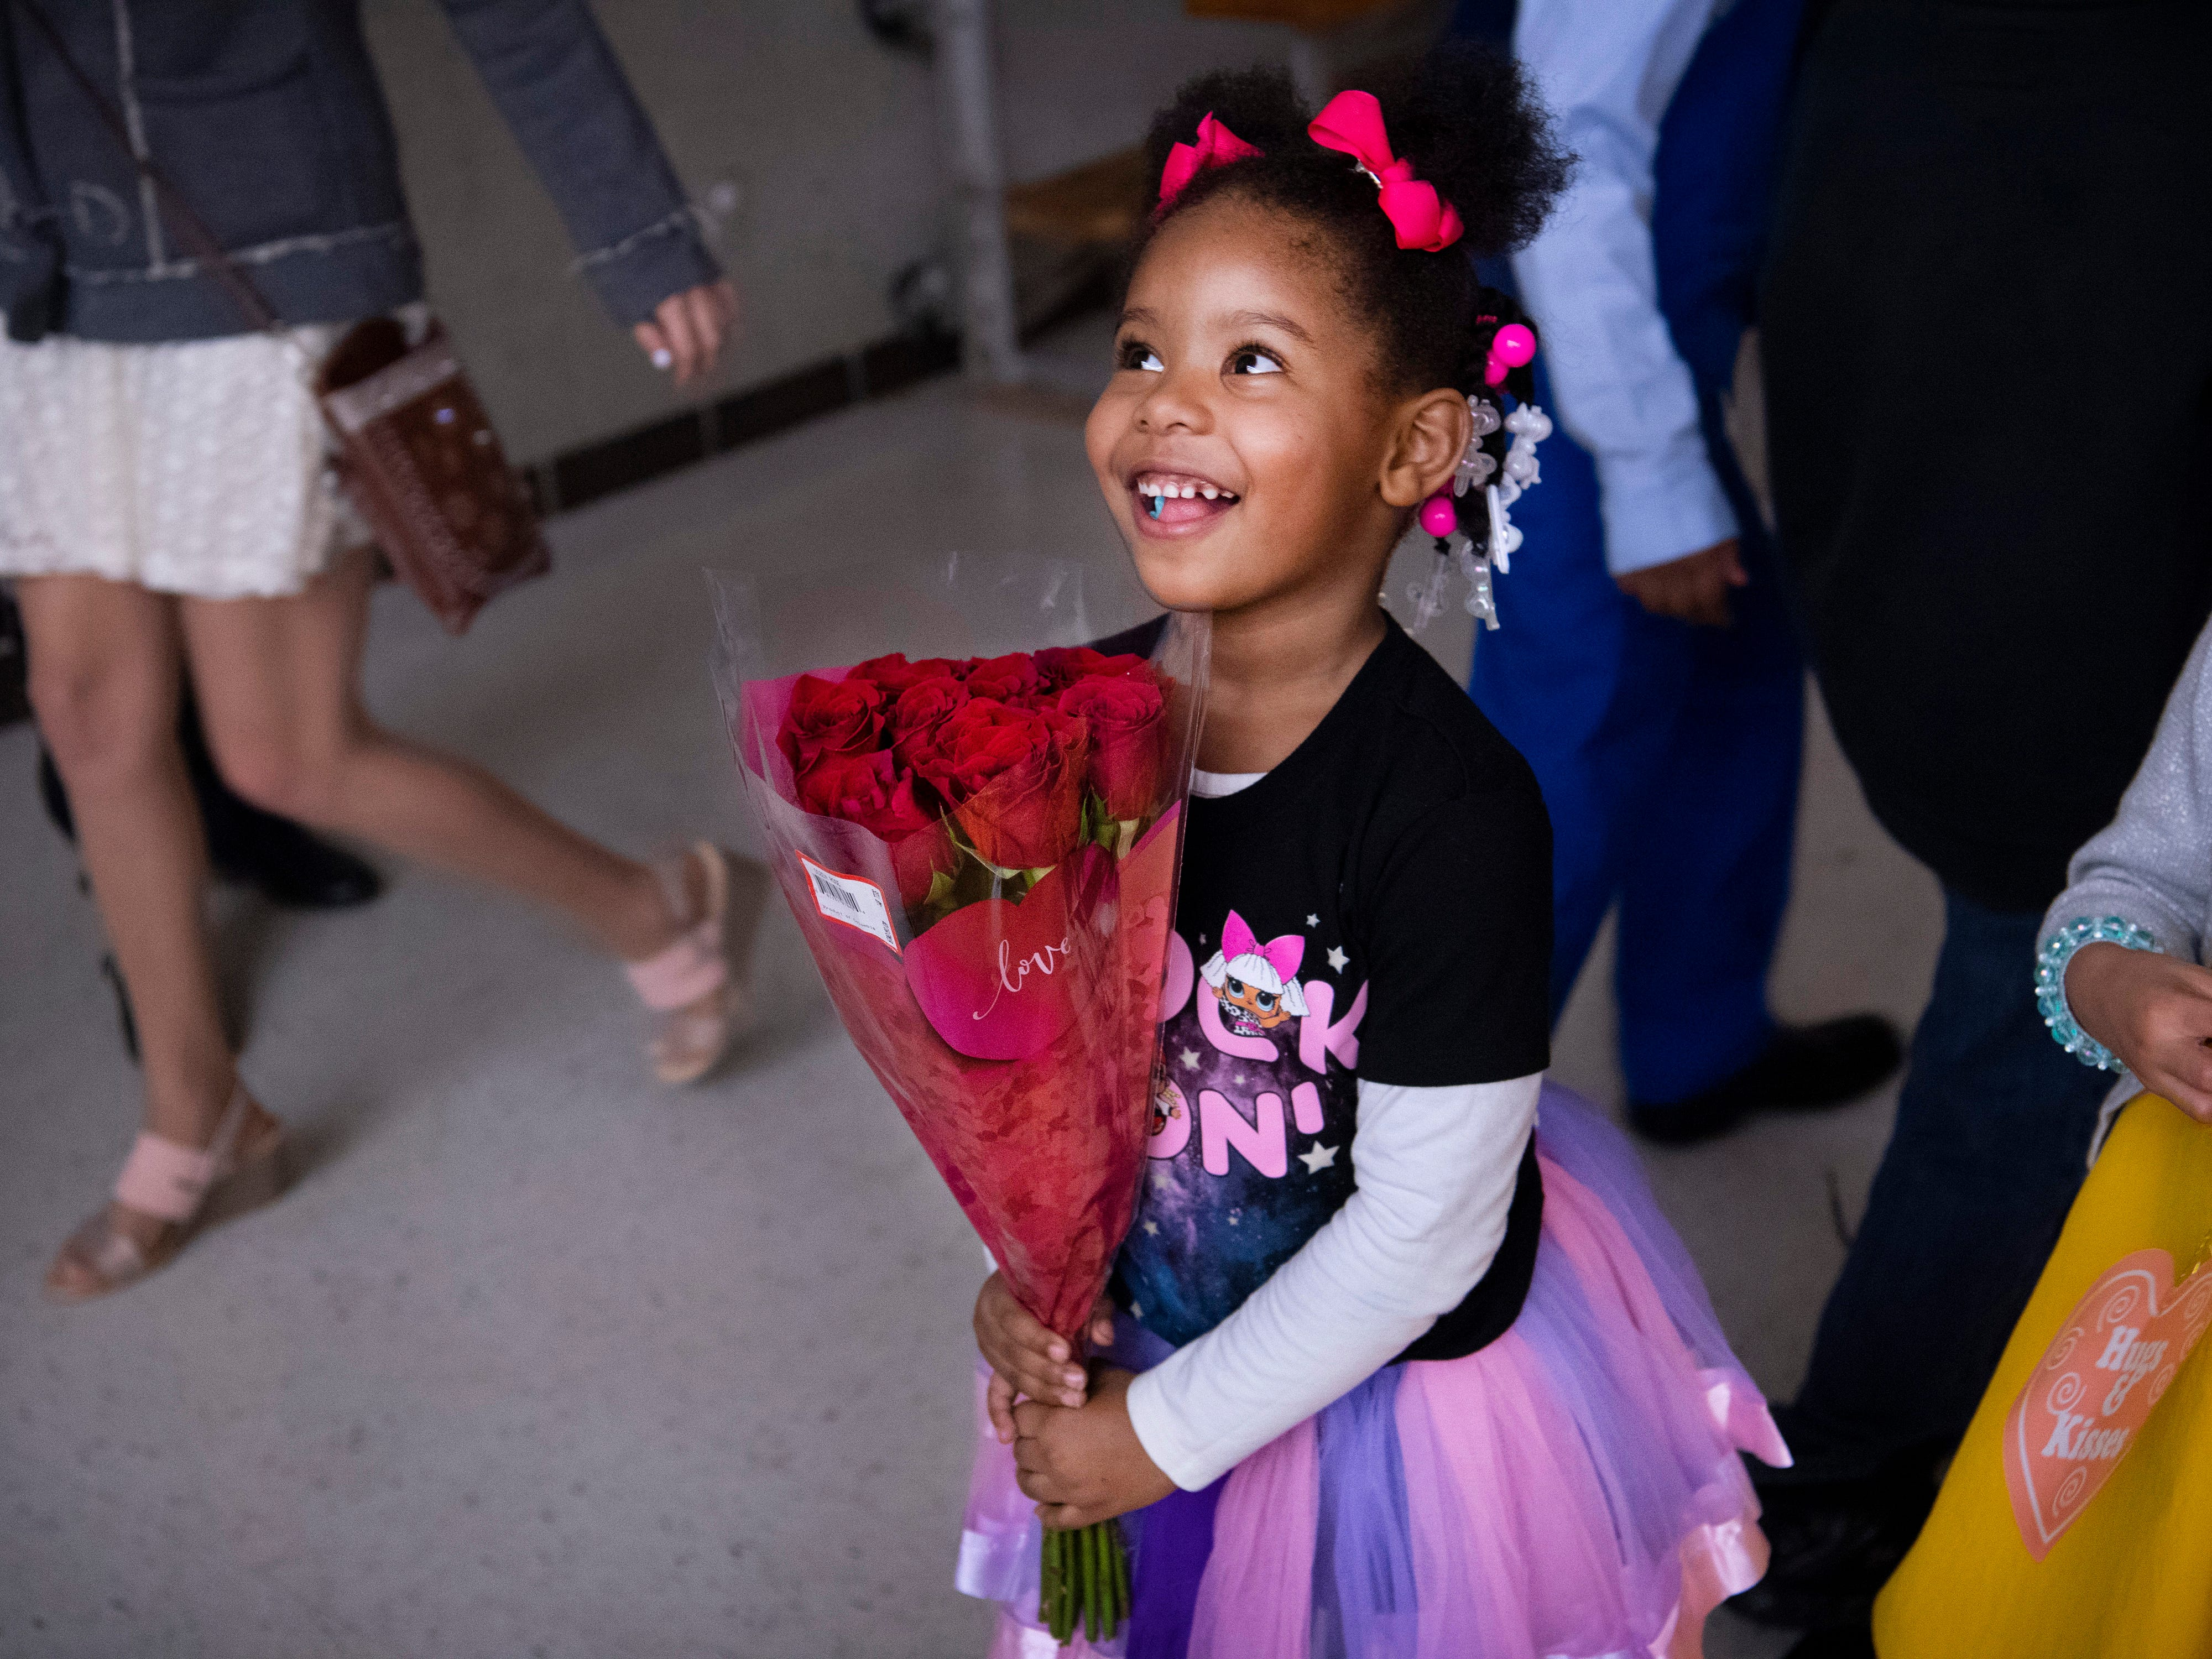 Adria Wiley, 4, a student in the pre-kindergarten program at Caze Elementary School, parades through the gymnasium clutching the red roses her dad had given her at the Sweetheart Dance Tuesday night. The annual Valentine's Day celebration offers students and their families a night of  community caring... not to mention a wonderful meal, crafting and dancing.